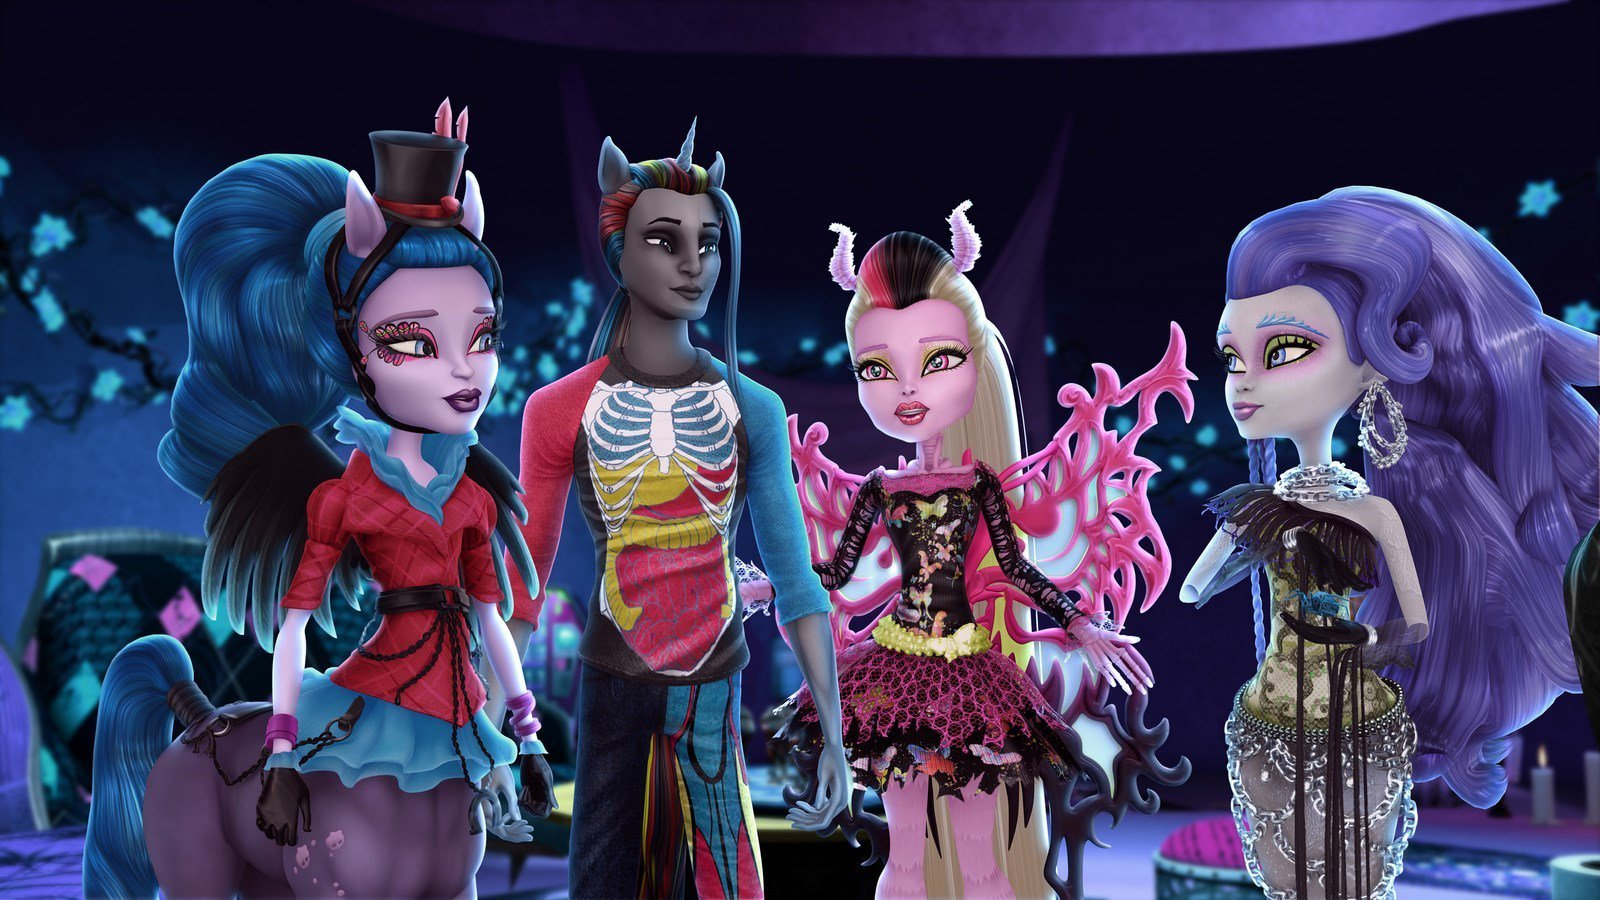 1 Monster High Freaky Fusion Hd Wallpapers Backgrounds